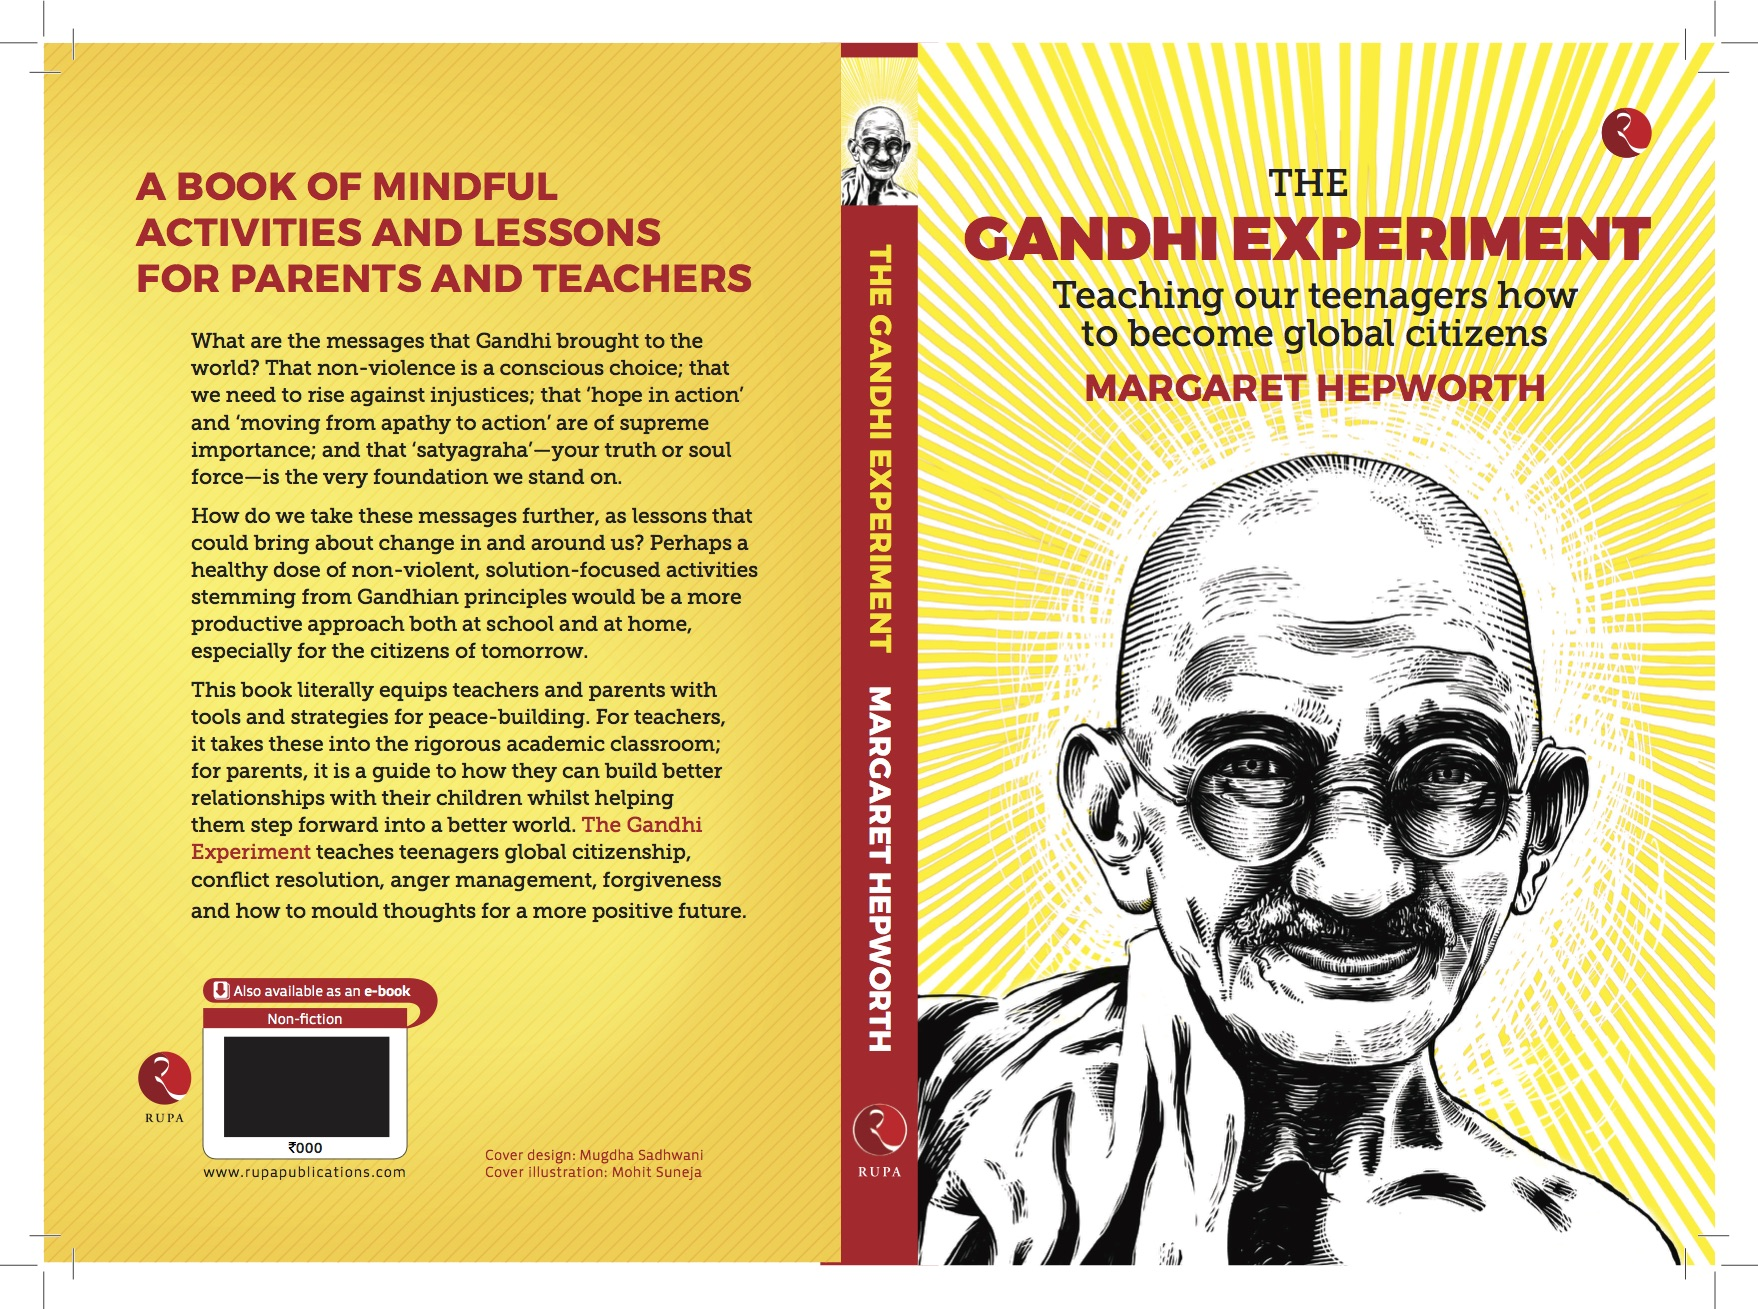 The Gandhi Experiment - publication date July 1, 2017.